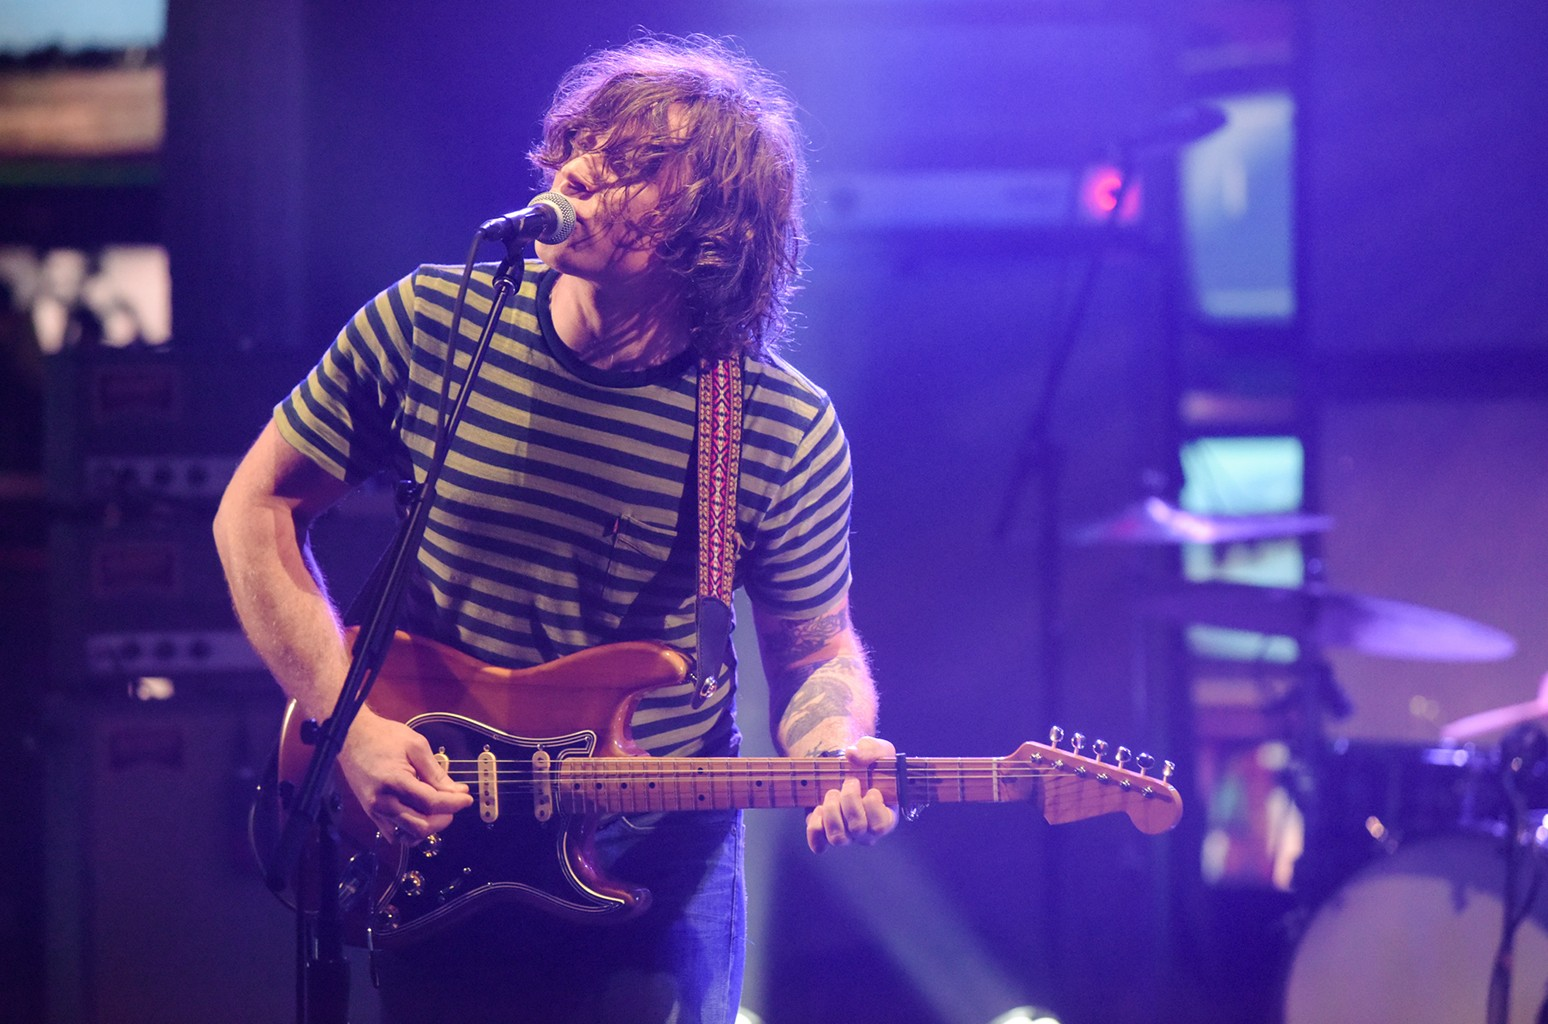 Ryan Adams on The Late Show with Stephen Colbert.